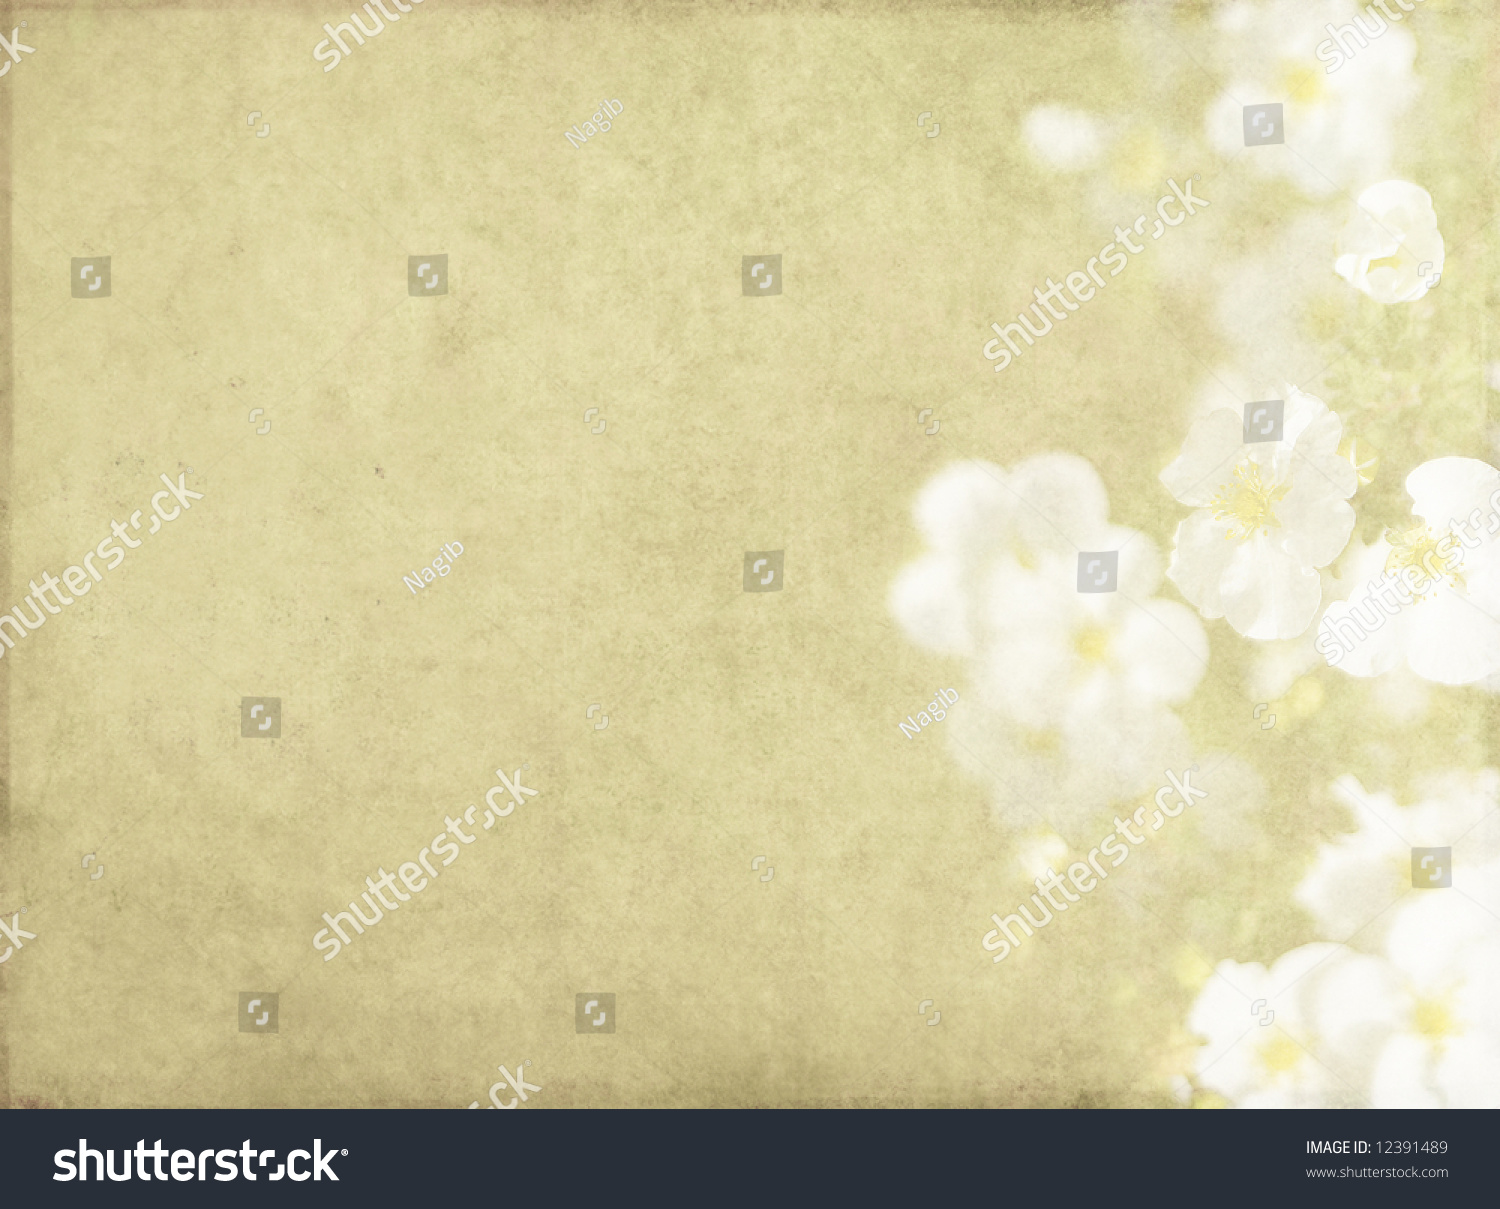 Lovely Brown Background Image With Interesting Texture ... - photo#23